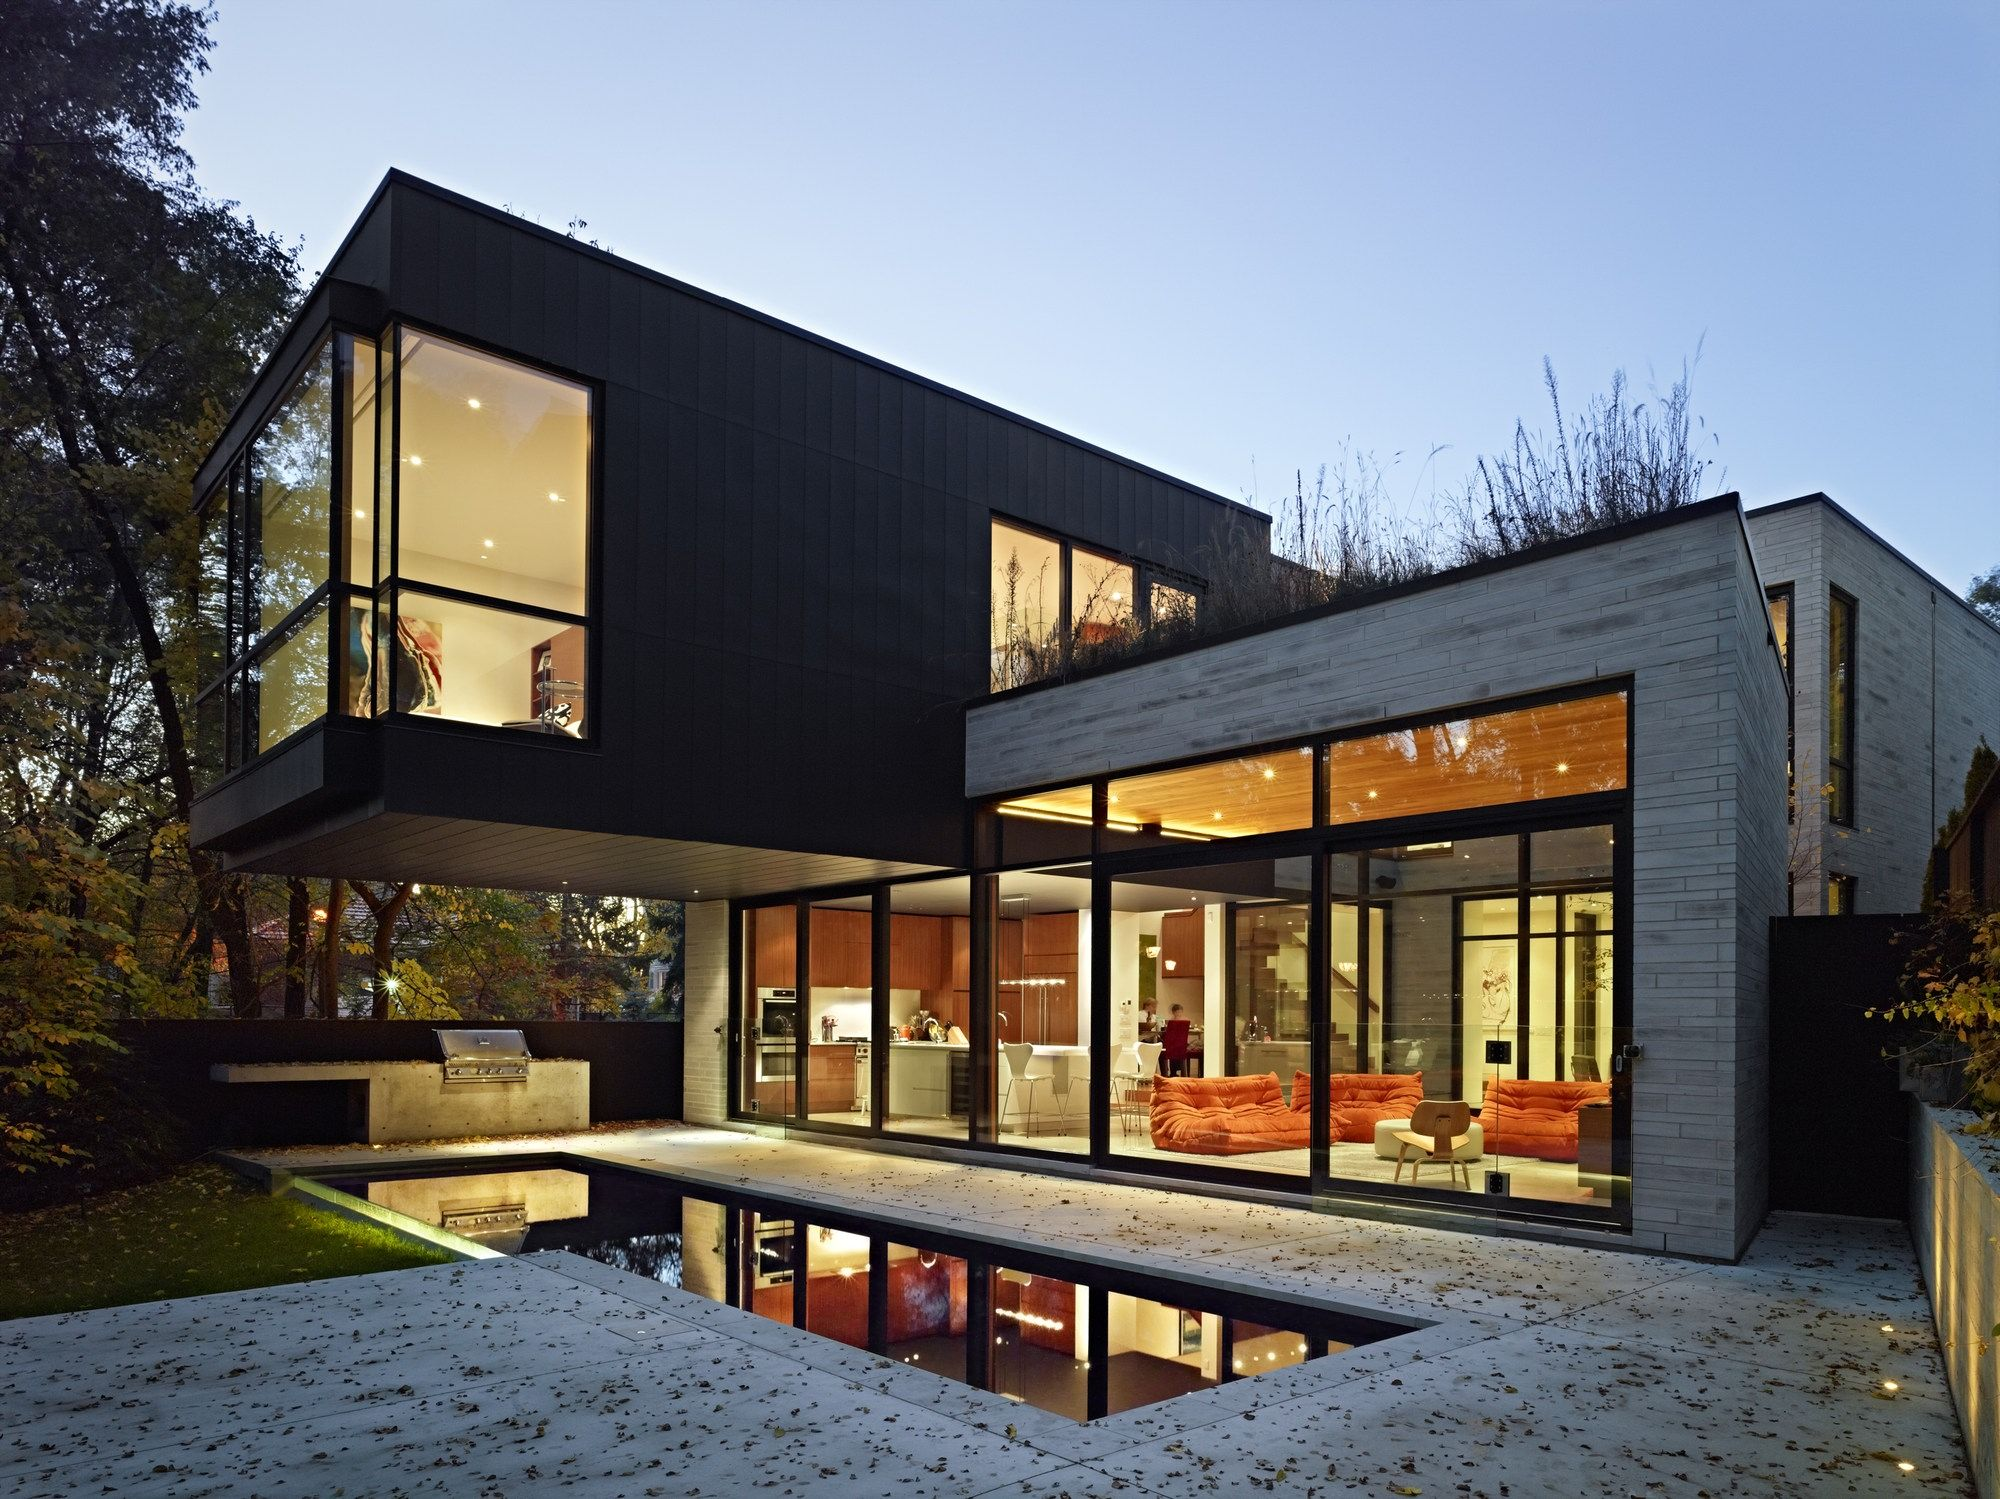 Groovy Cedarvale Ravine House By Drew Mandel Architects Modern Design Largest Home Design Picture Inspirations Pitcheantrous